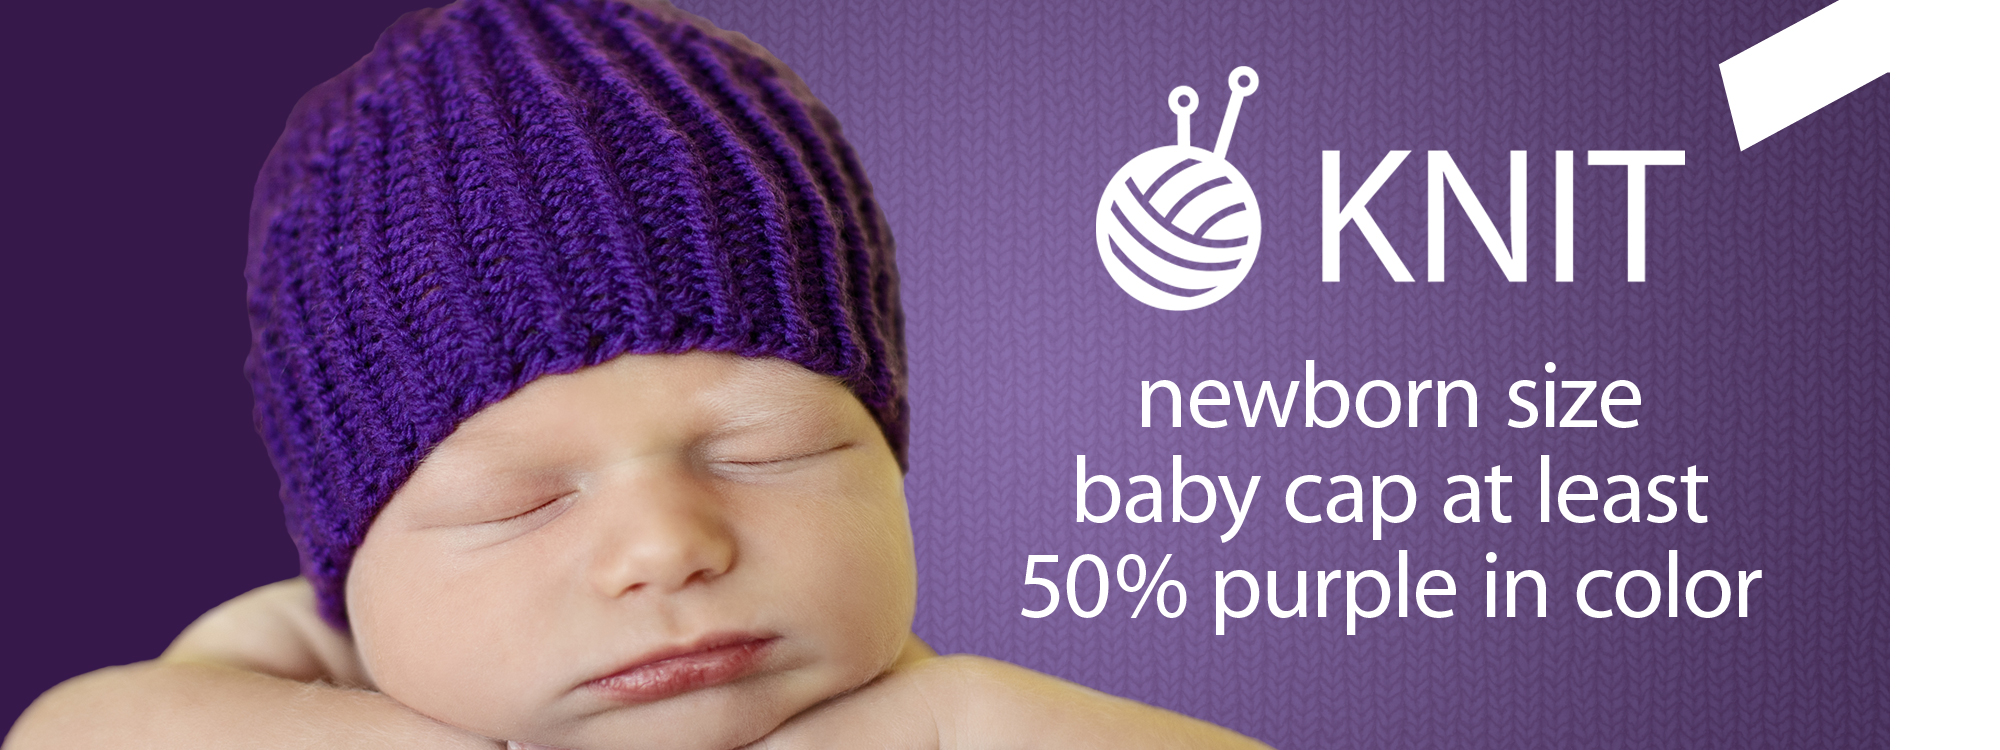 Spreading Awareness of Infant Abuse with Purple Caps ... 2d5e9f5d706